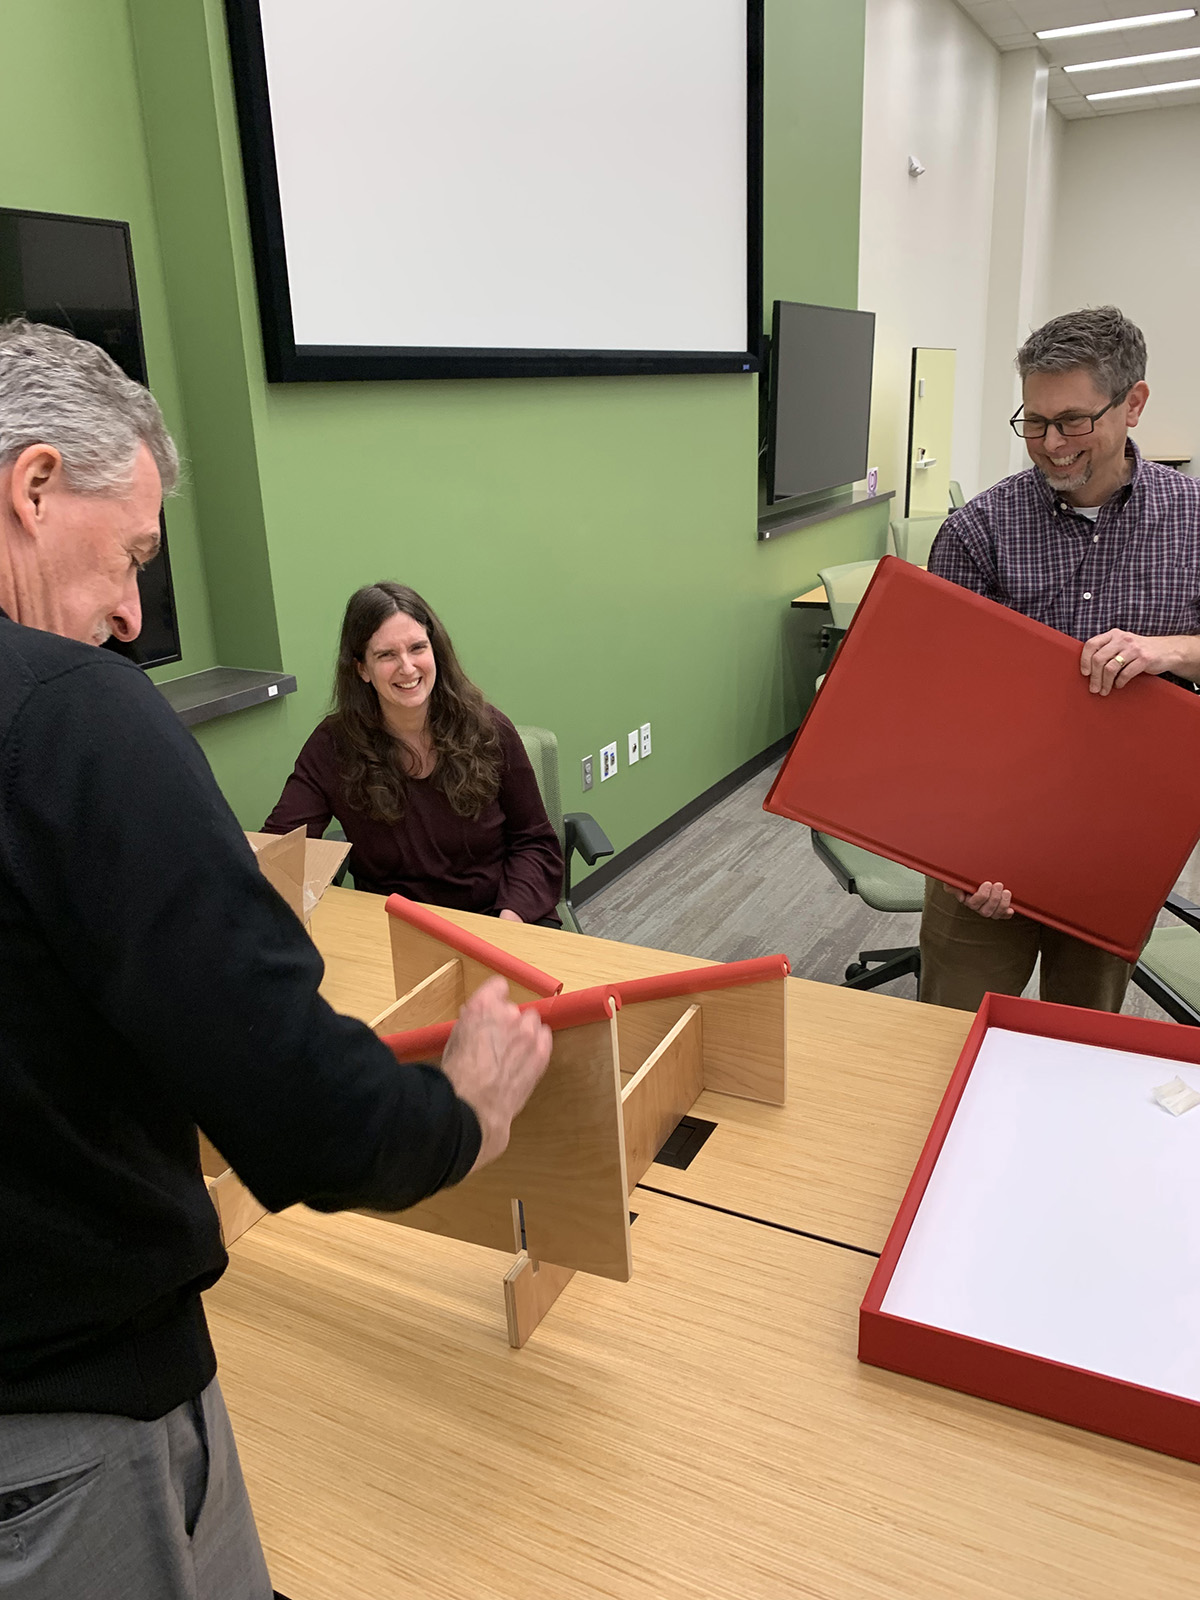 John Wilson, Andrea Turner (Central Libraries Special Collections) and Sha Towers (Interim Associate Dean for Central Libraries) set a volume of the St. John's Bible on a viewing stand